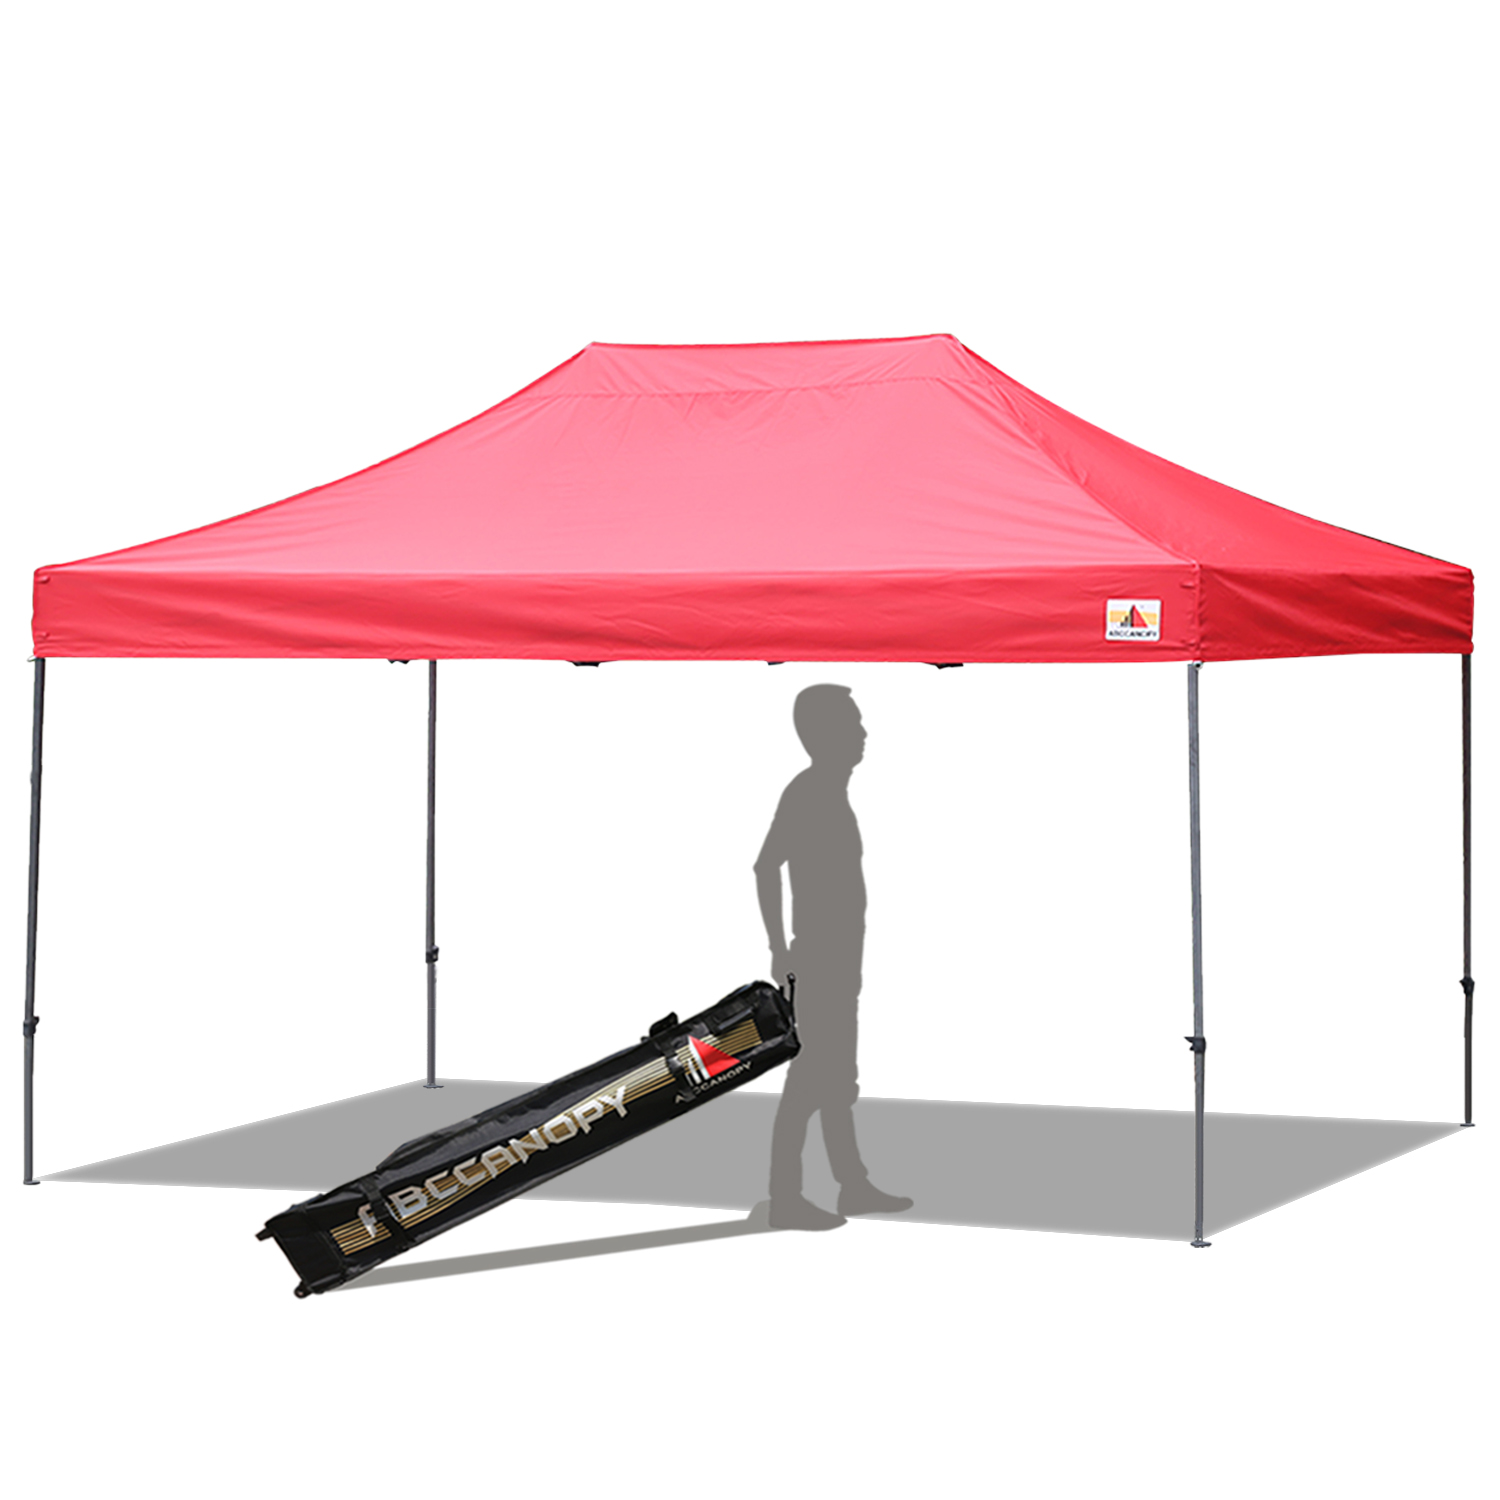 Abccanopy 3m x 4.5m Pop up Canopy Instant Shelter Outdor Party Tent Gazebo  sc 1 st  Pop Up Tents?Custom Canopies?Pop Up Canopies?Canopy Tents ... & Abccanopy 3m x 4.5m Pop up Canopy Instant Shelter Outdor Party ...